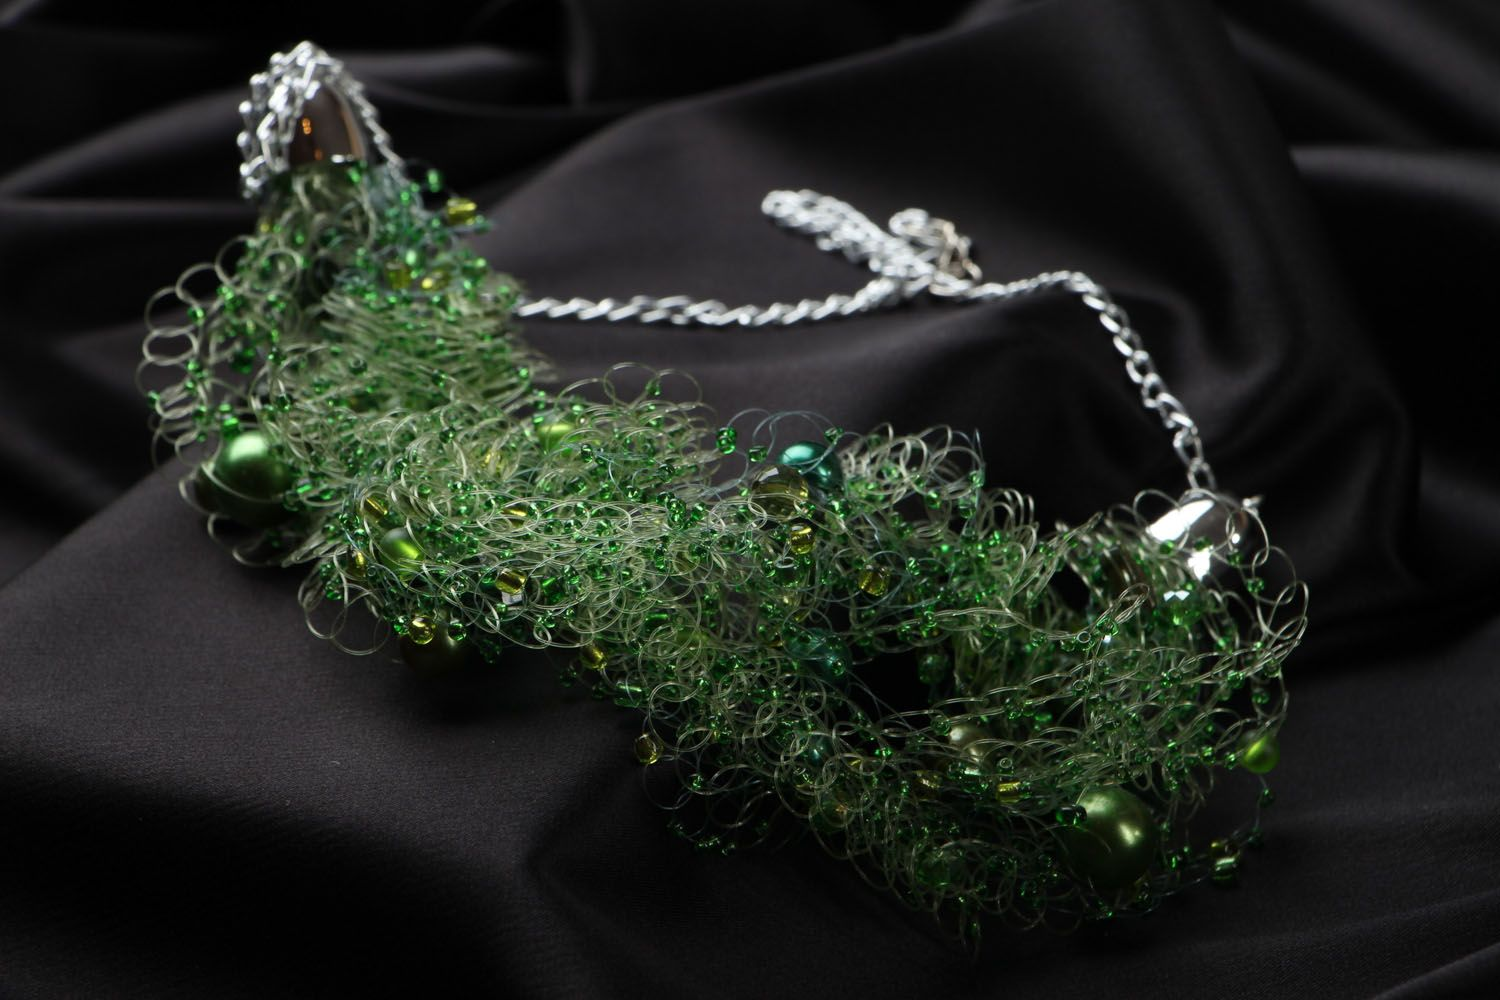 Women's necklace with beads and natural stones photo 2